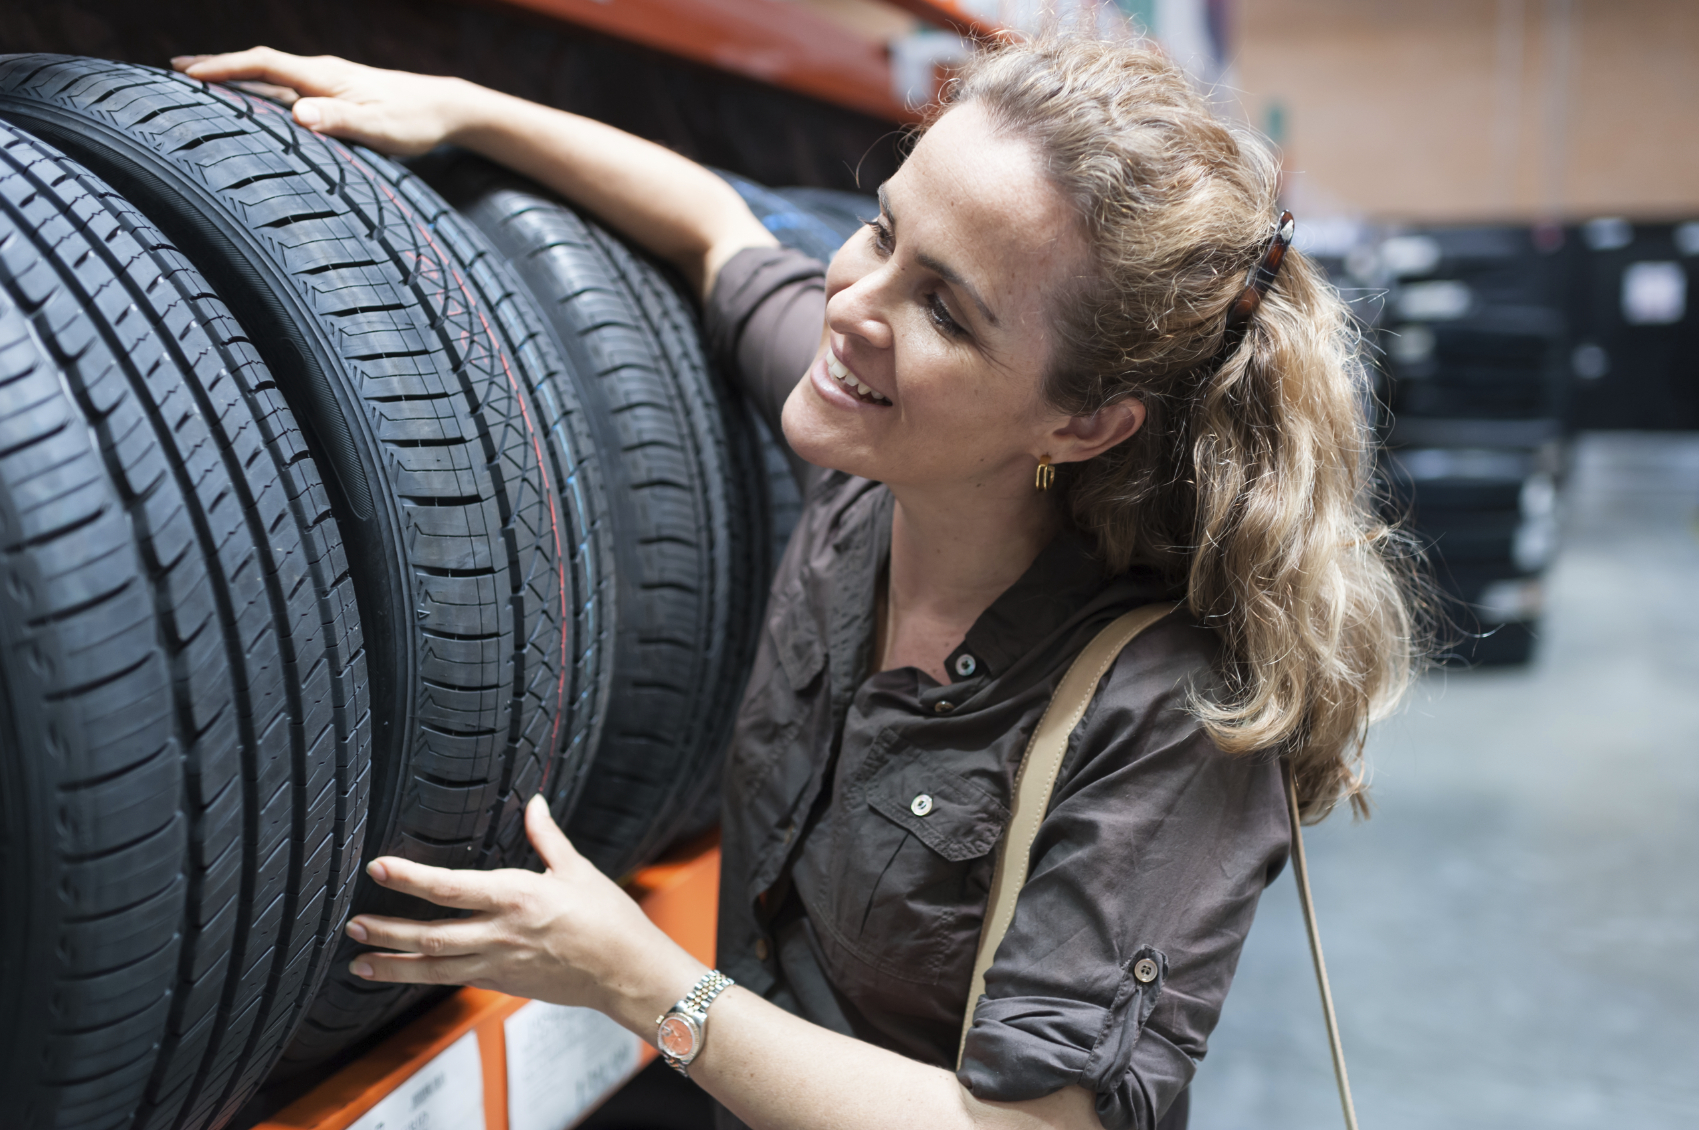 Finding the right tires